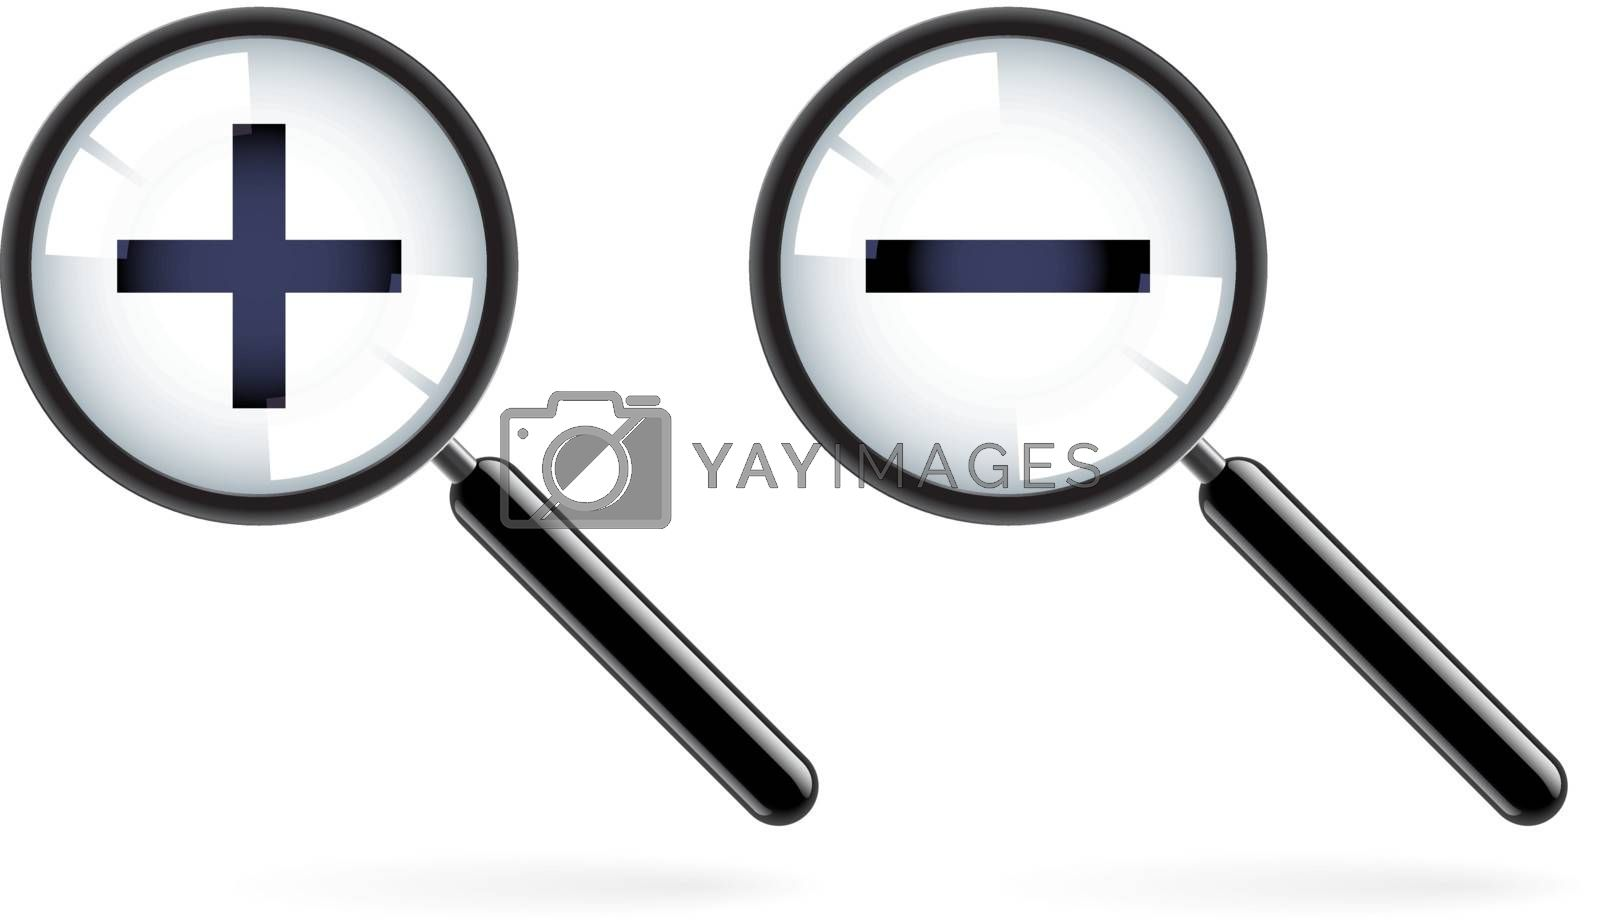 Monochromatic increase-decrease magnifiers icons. Illustration on white background for design